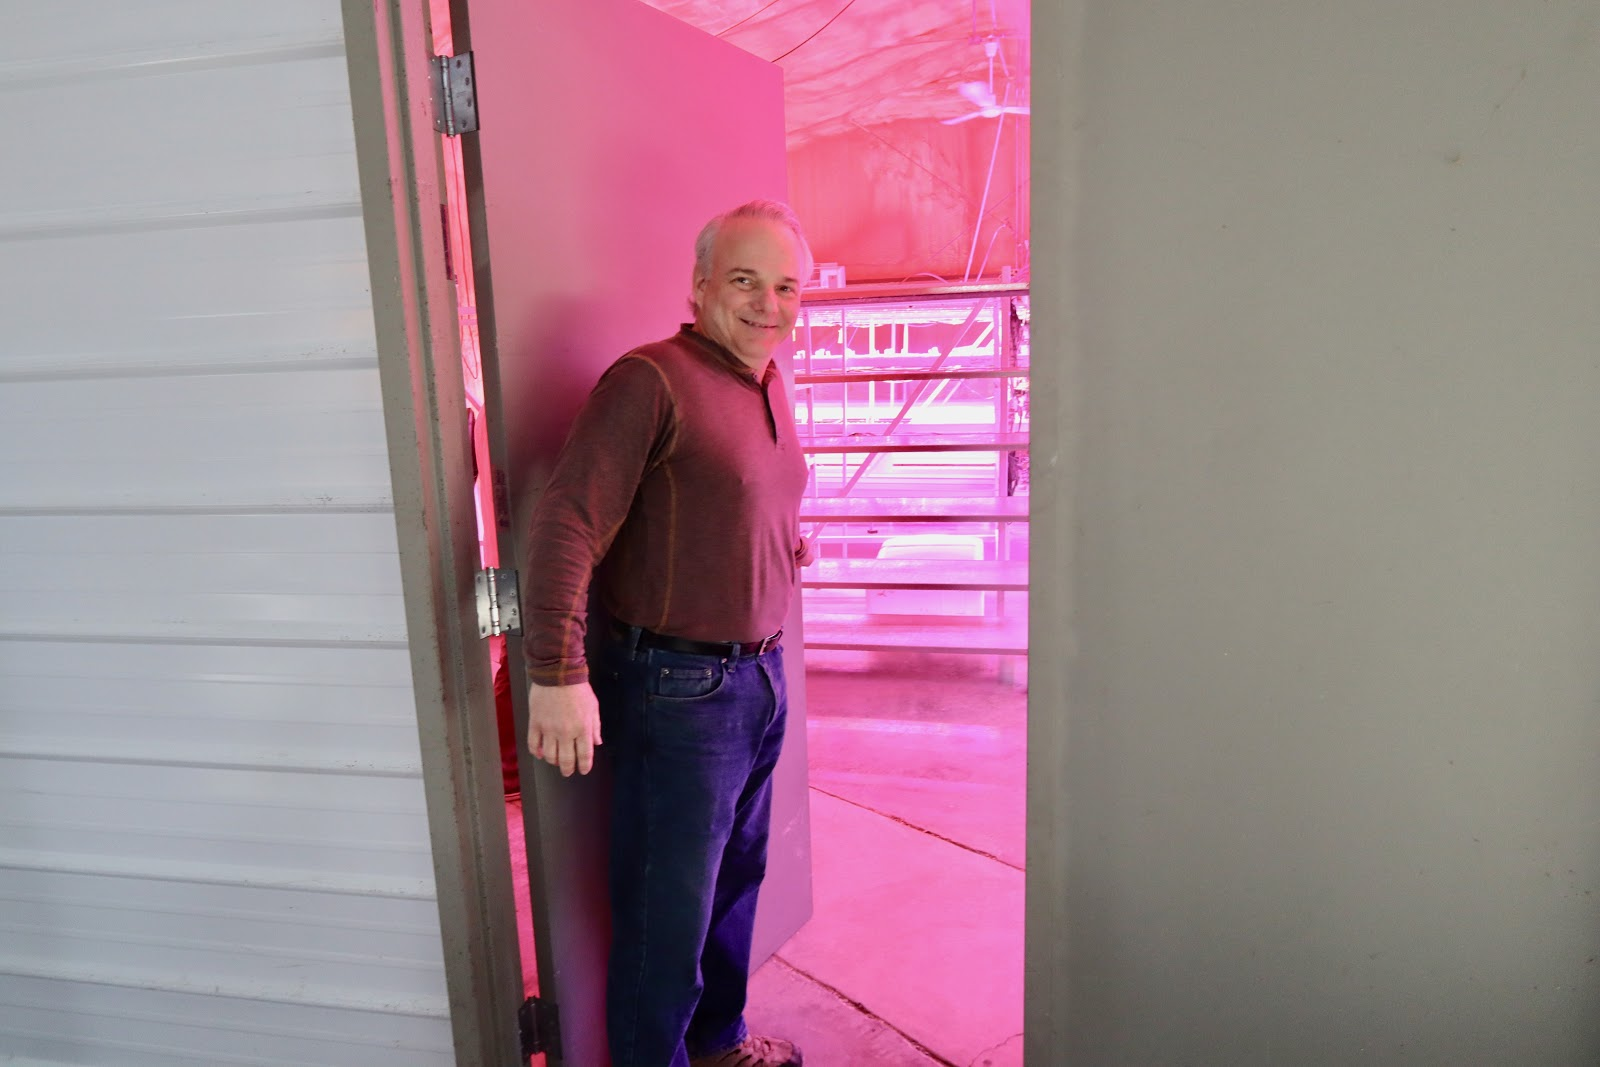 Stuart Raburn takes Bham Now on a tour of the seedling and microgreen grow room. The system is entirely automated, controlling the humidity, light and temperature by sensors. (Photo by Christine Hull for Bham Now)